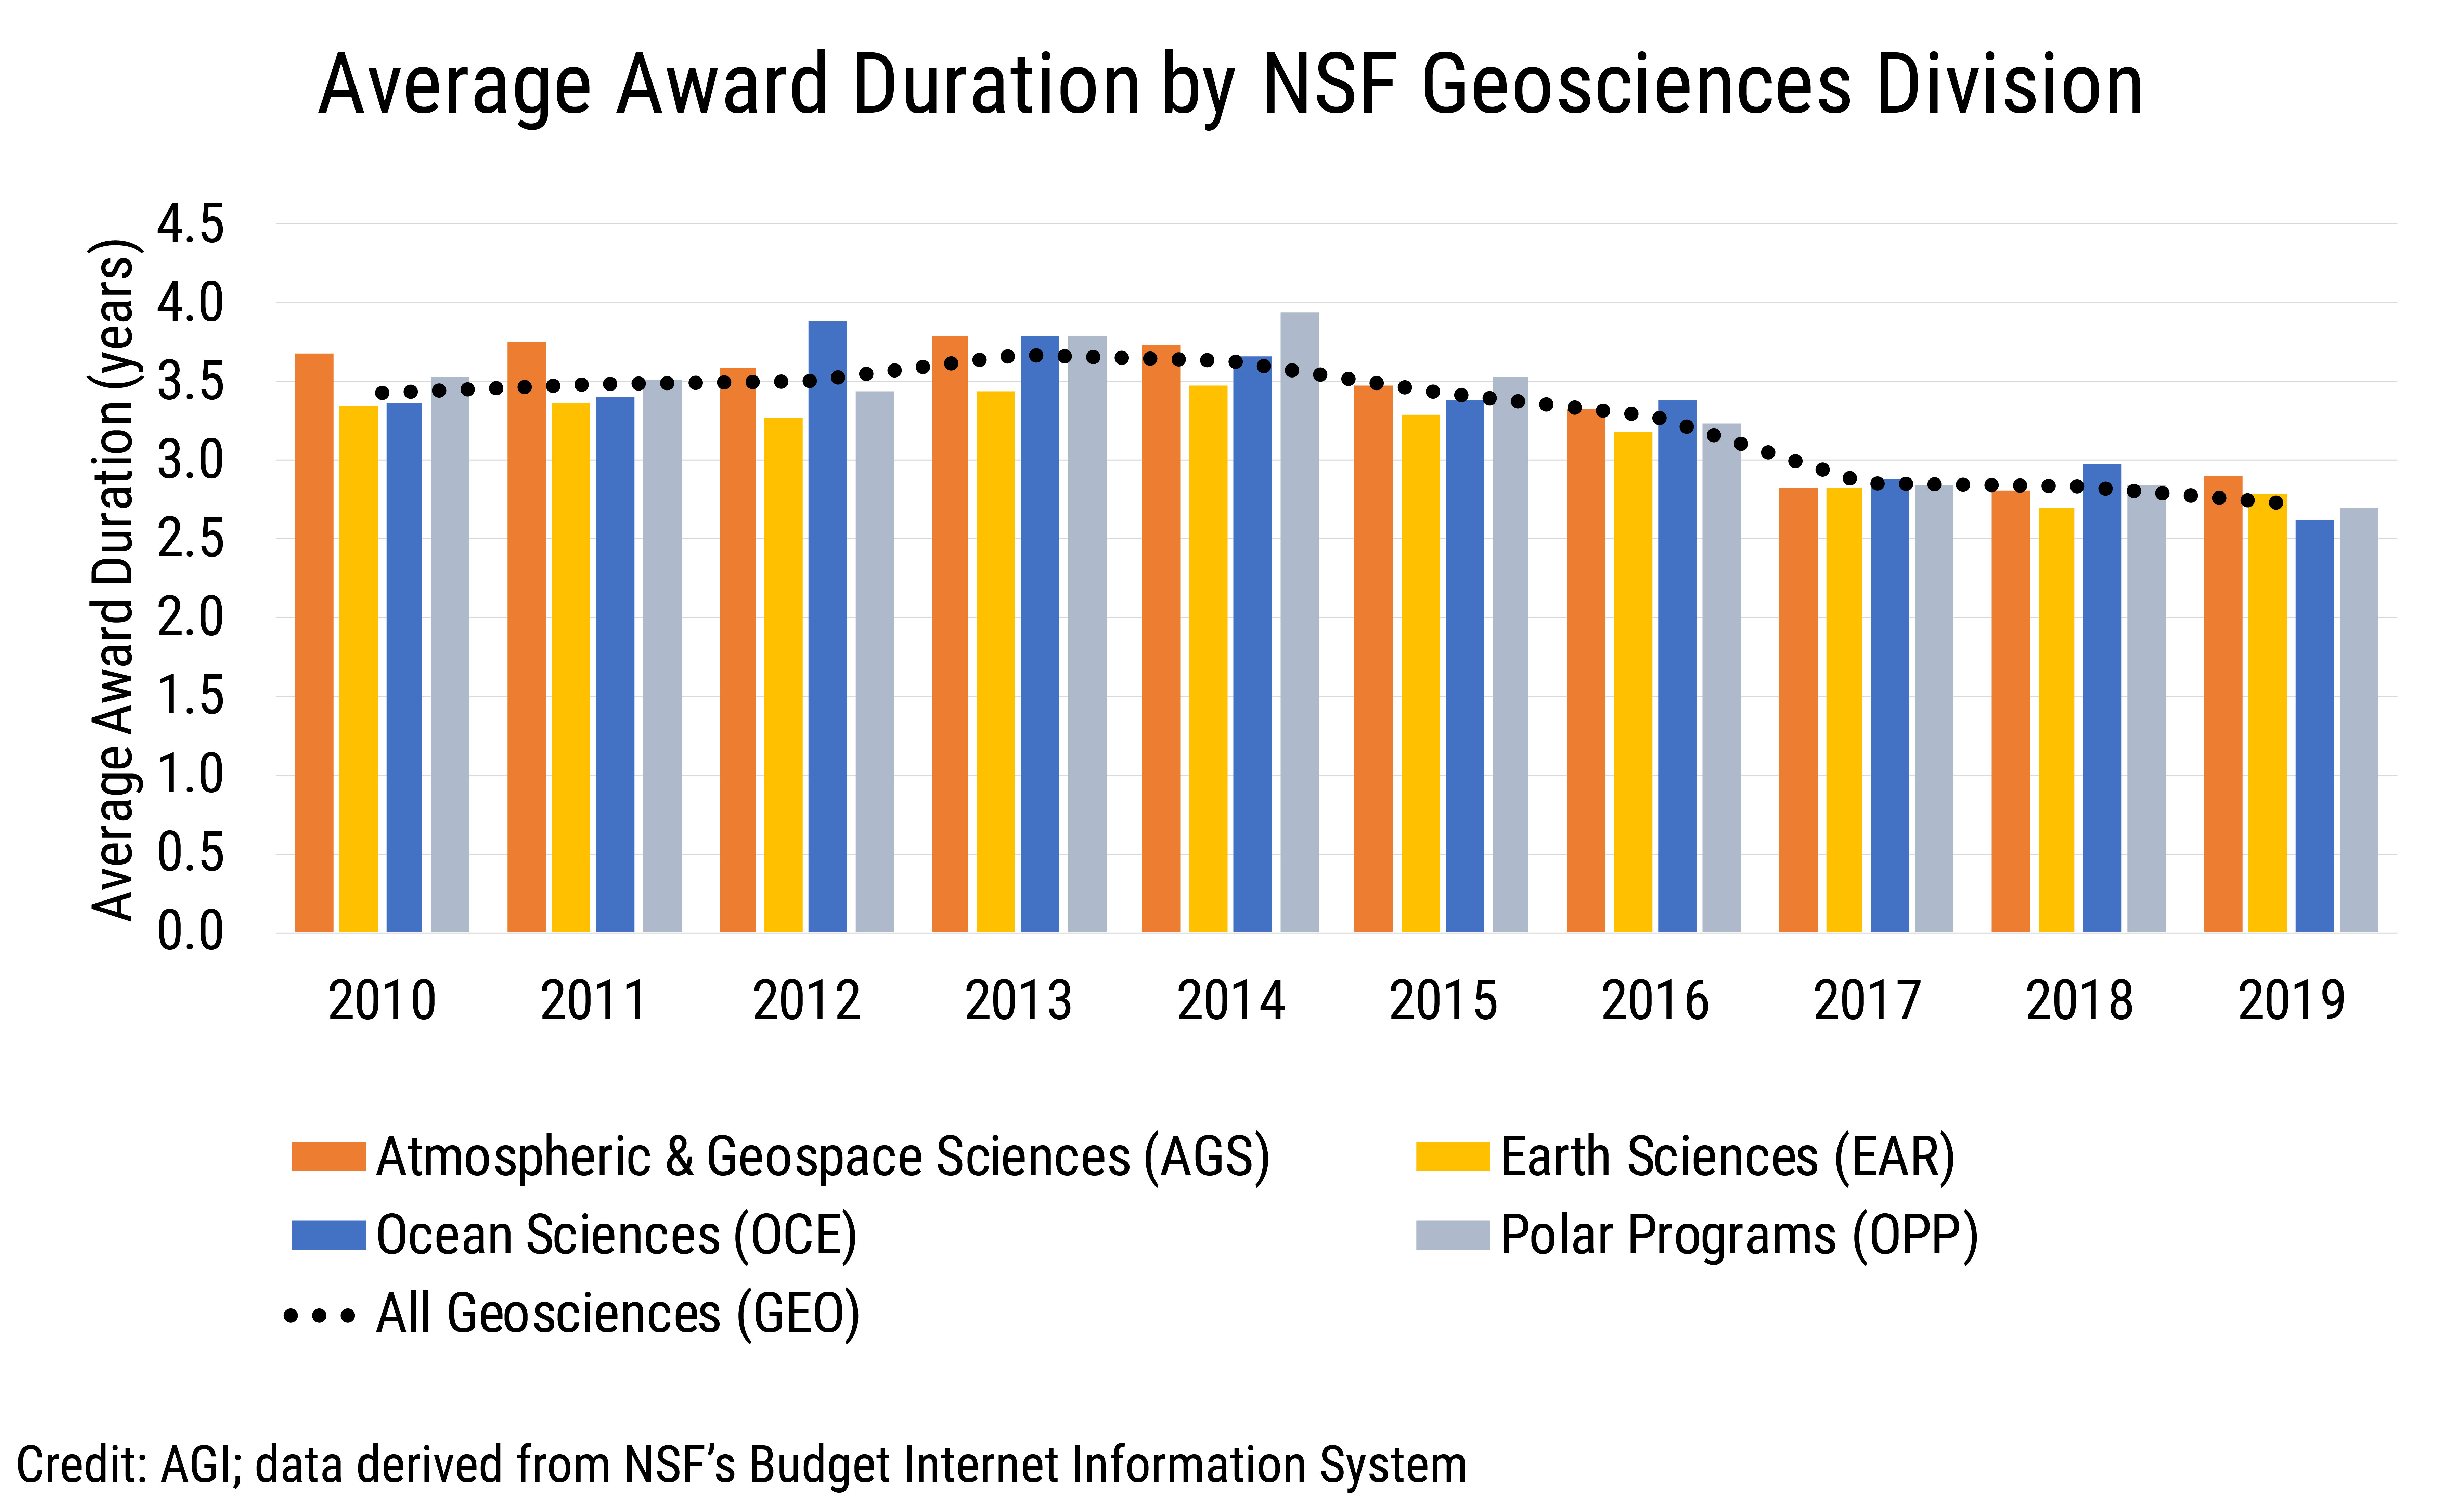 Data Brief 2019-016 chart 04: Average Award Duration by NSF Geosciences Division (credit: AGI; data derived from NSF BIIS)